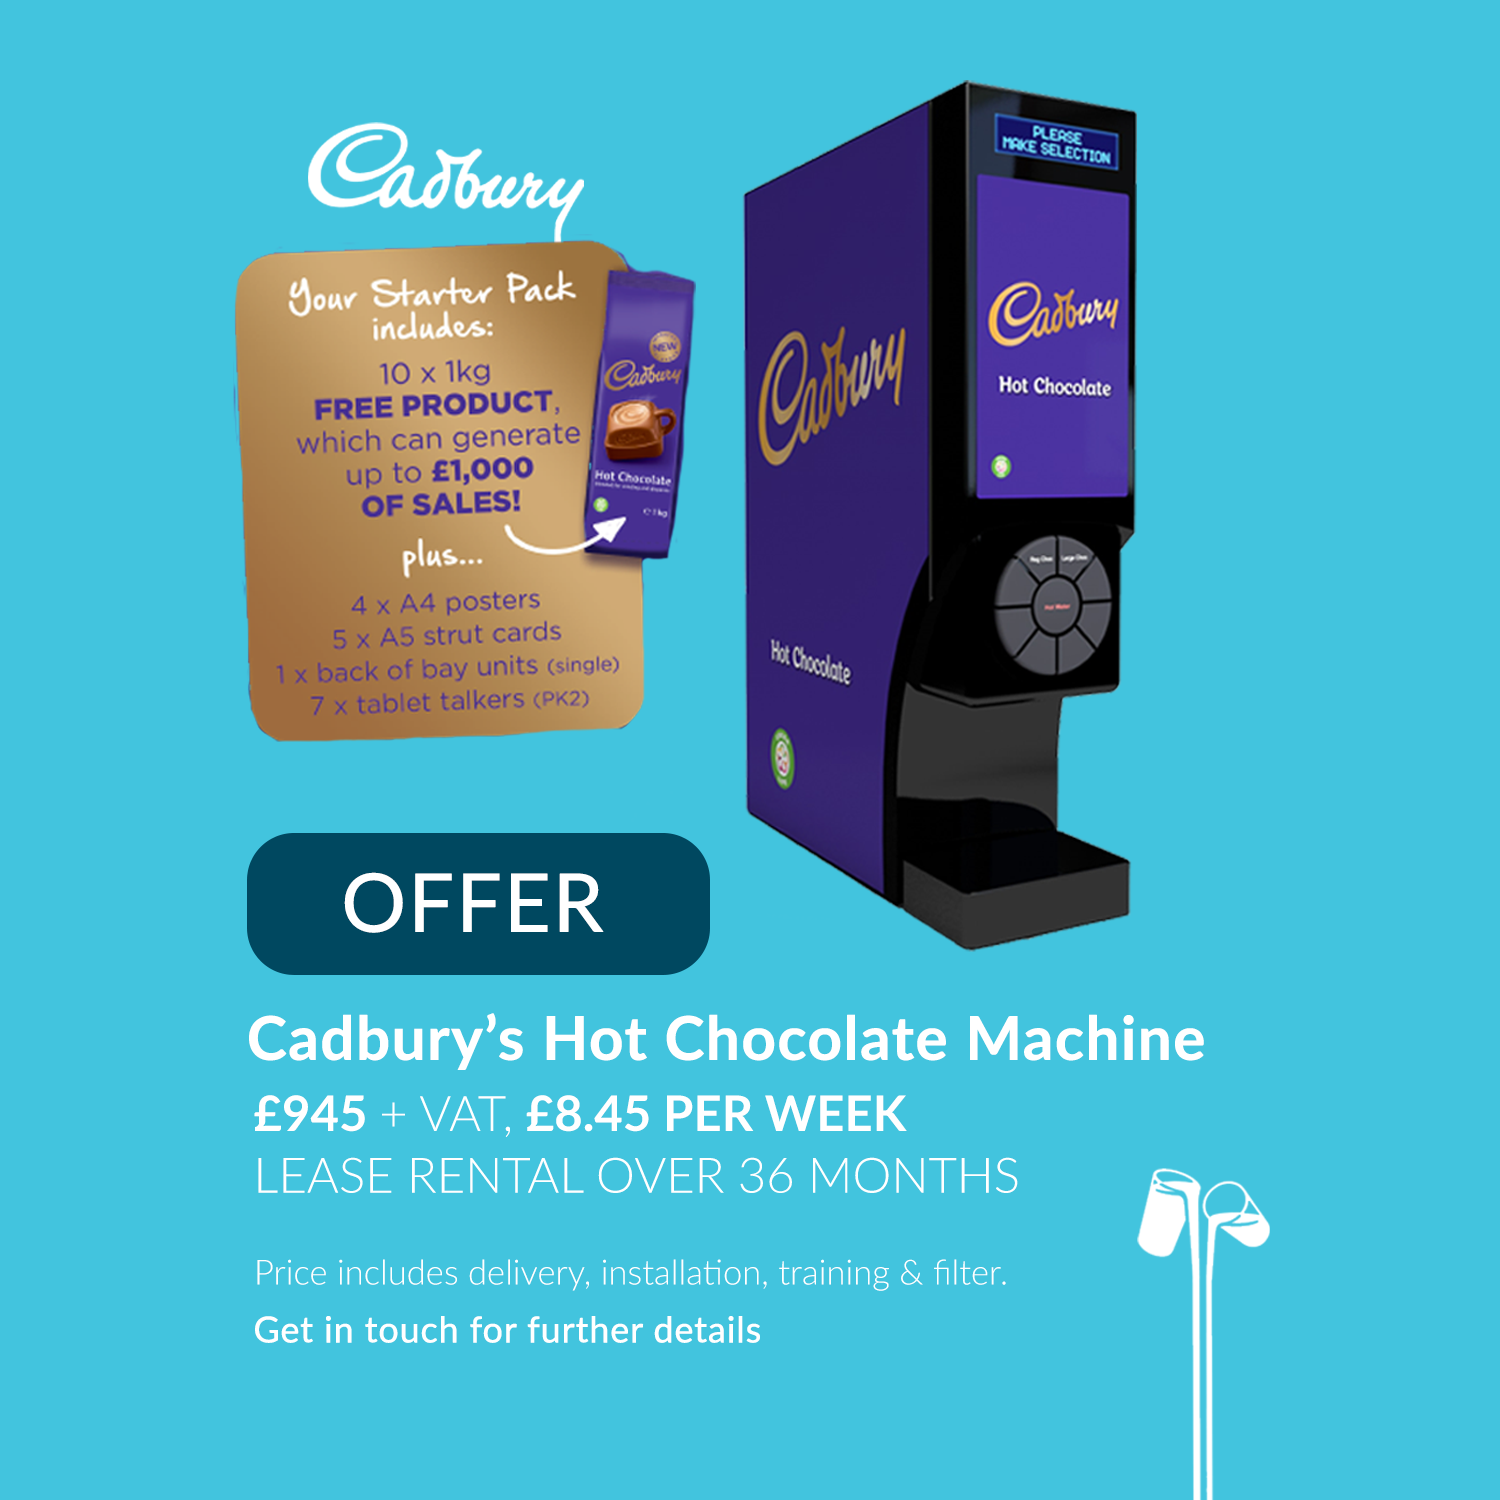 Cadburys hot chocolate machine offer